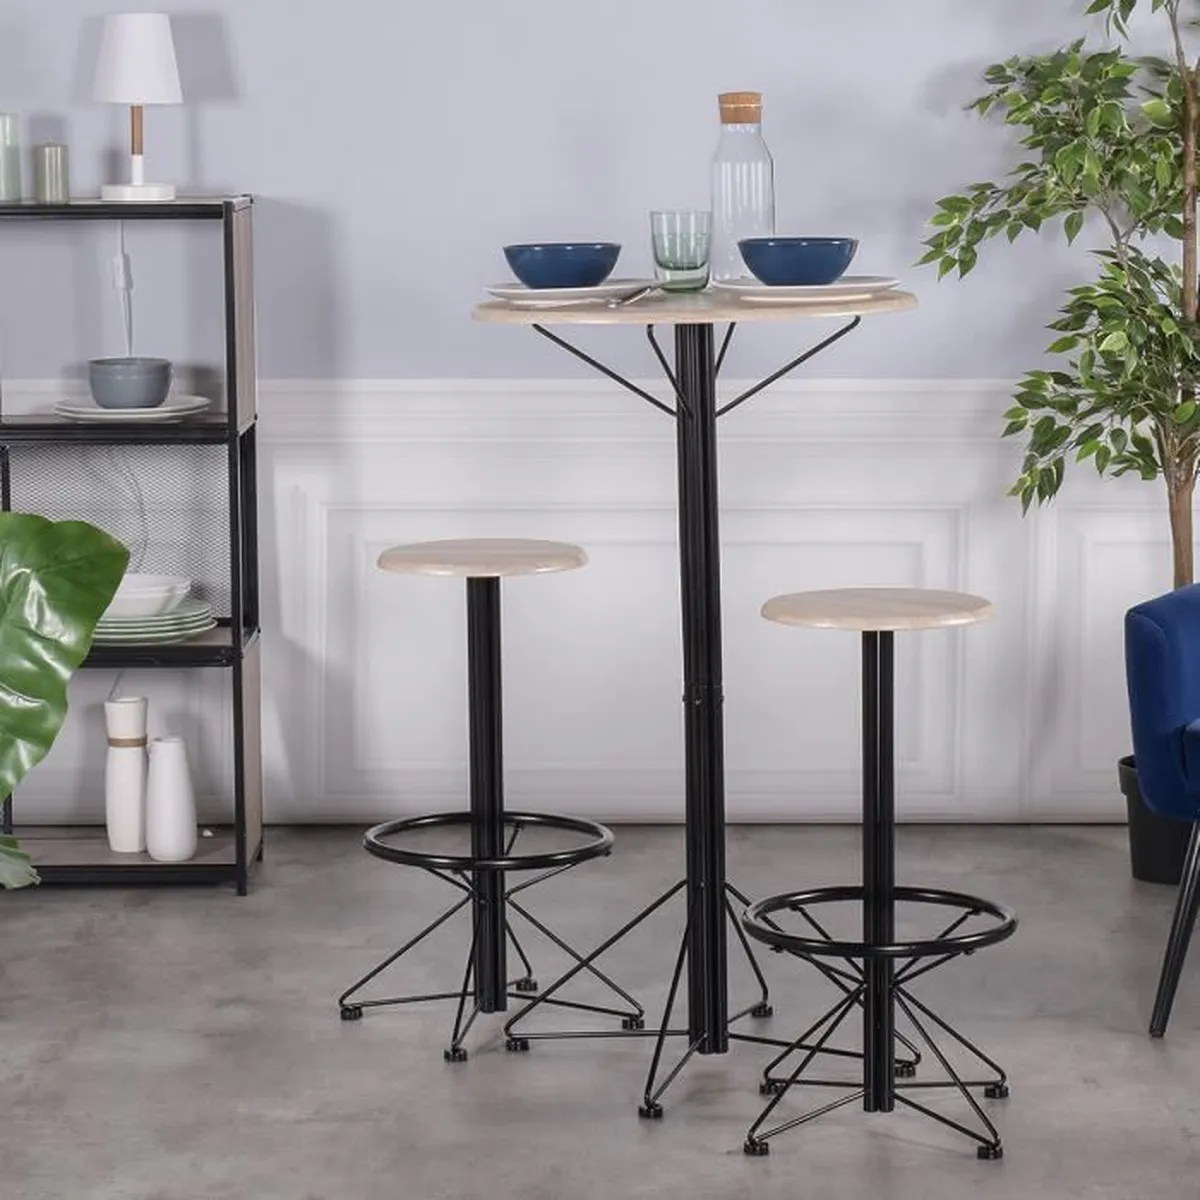 Tables Hautes De Cuisine Ensemble Table De Bar Set 1 Table 2 Chaises Table Haute Cuisine 3pcs Scandinave Style Pour Pub Ou Solarium Hêtre